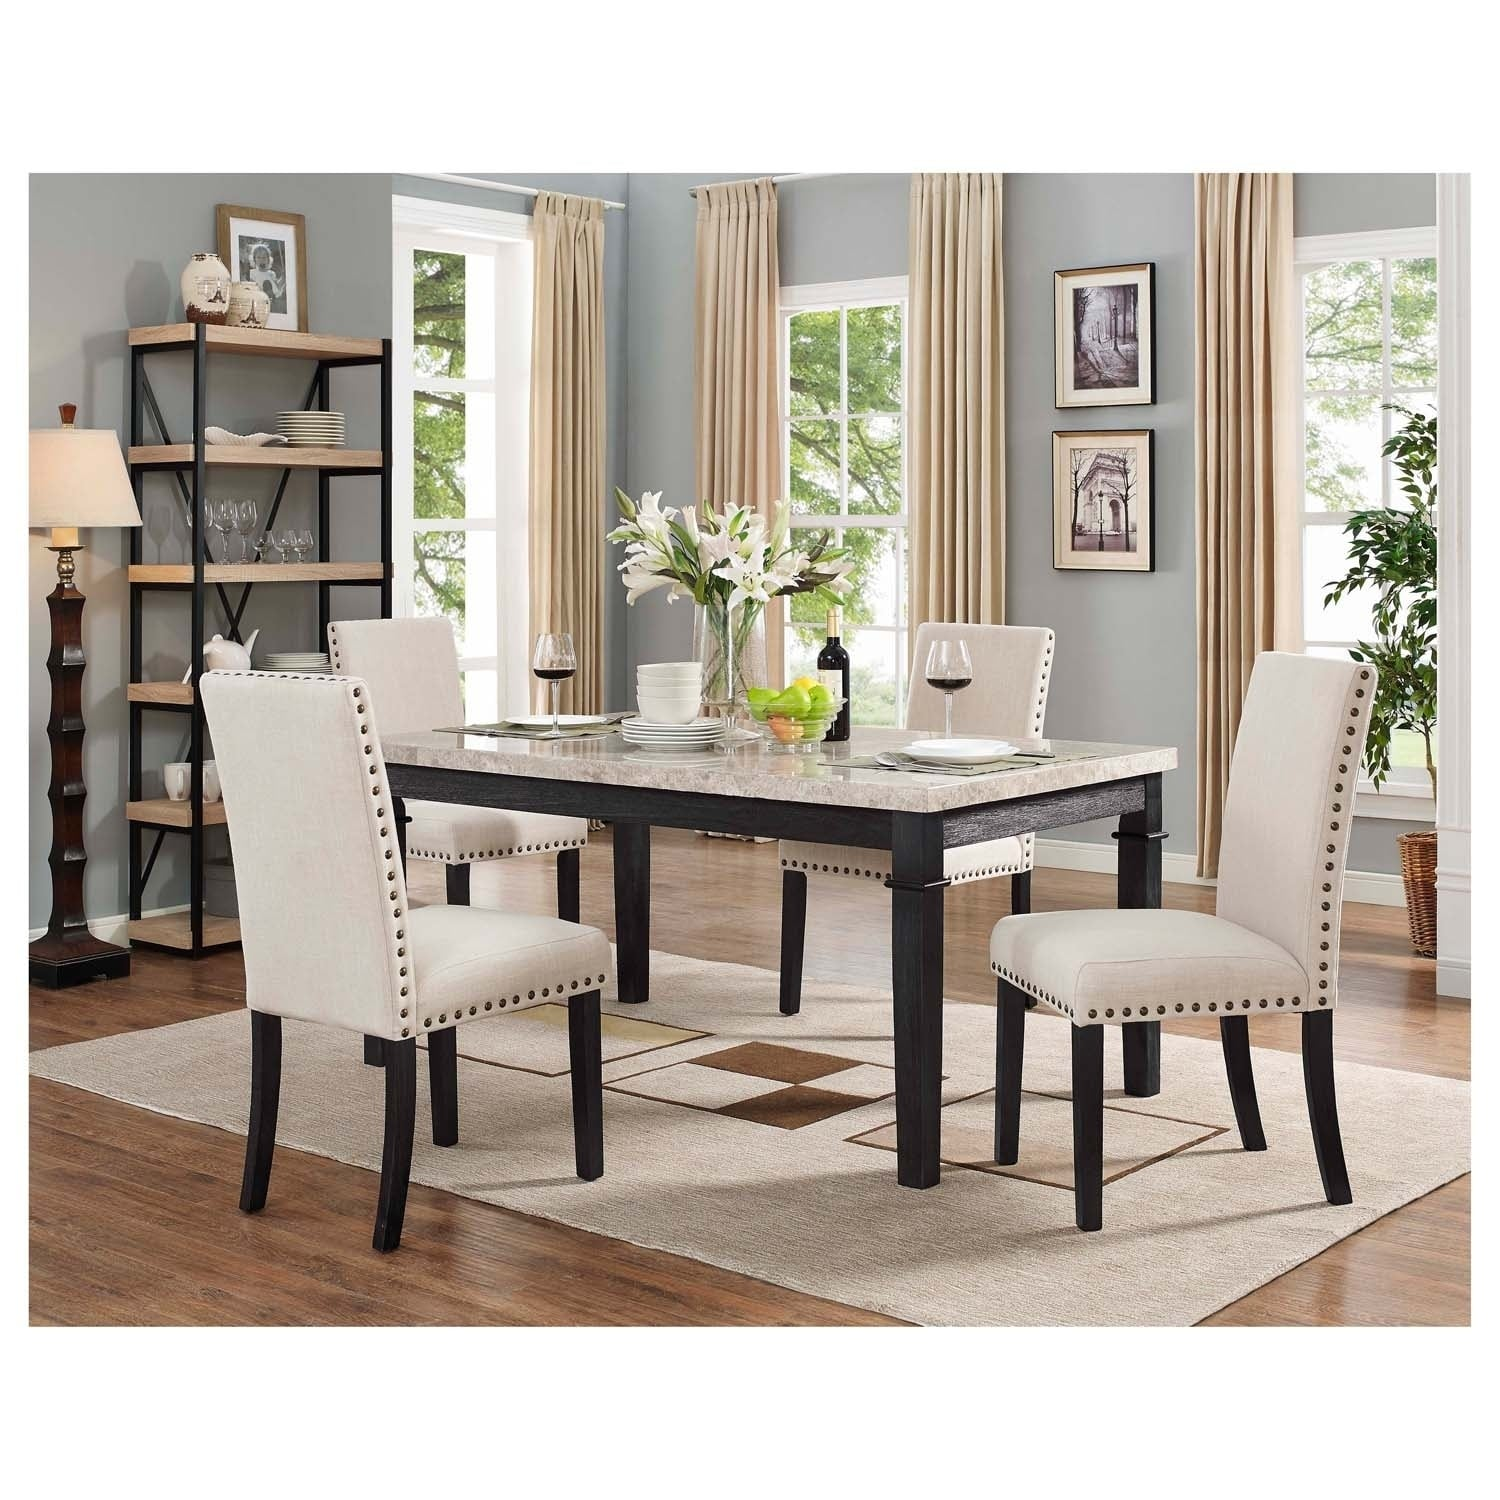 Picket House Furnishings Bradley 5pc Dining Set Table 4 Upholstered Chairs Overstock 19837119